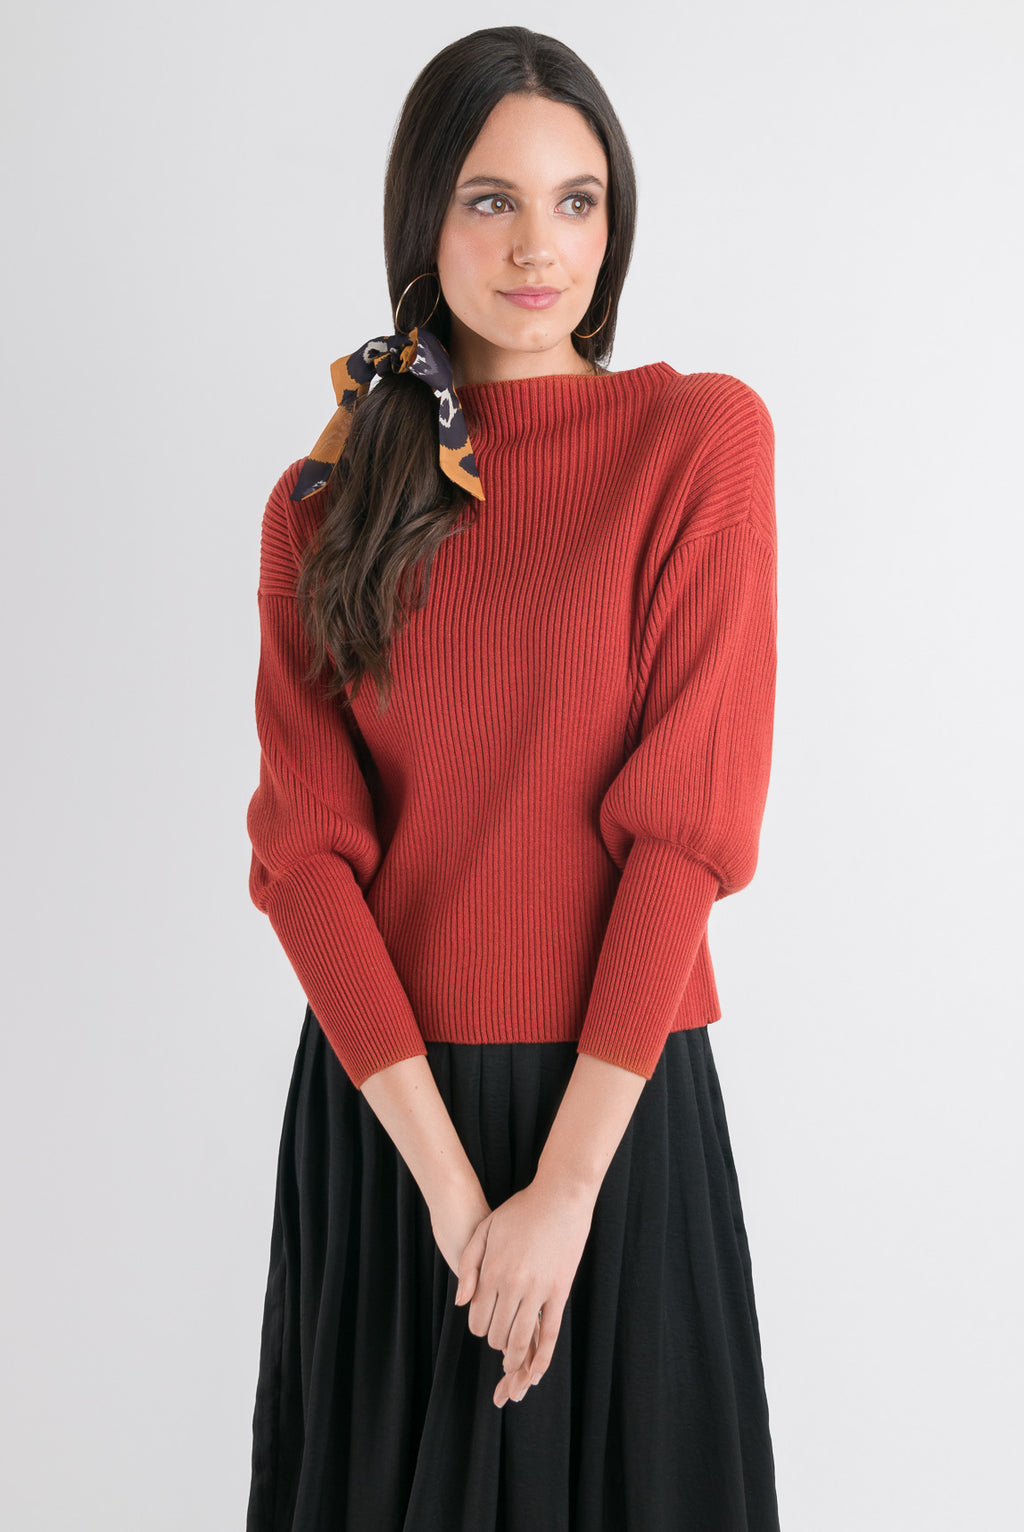 Blouson Sleeve Sweater - Rust